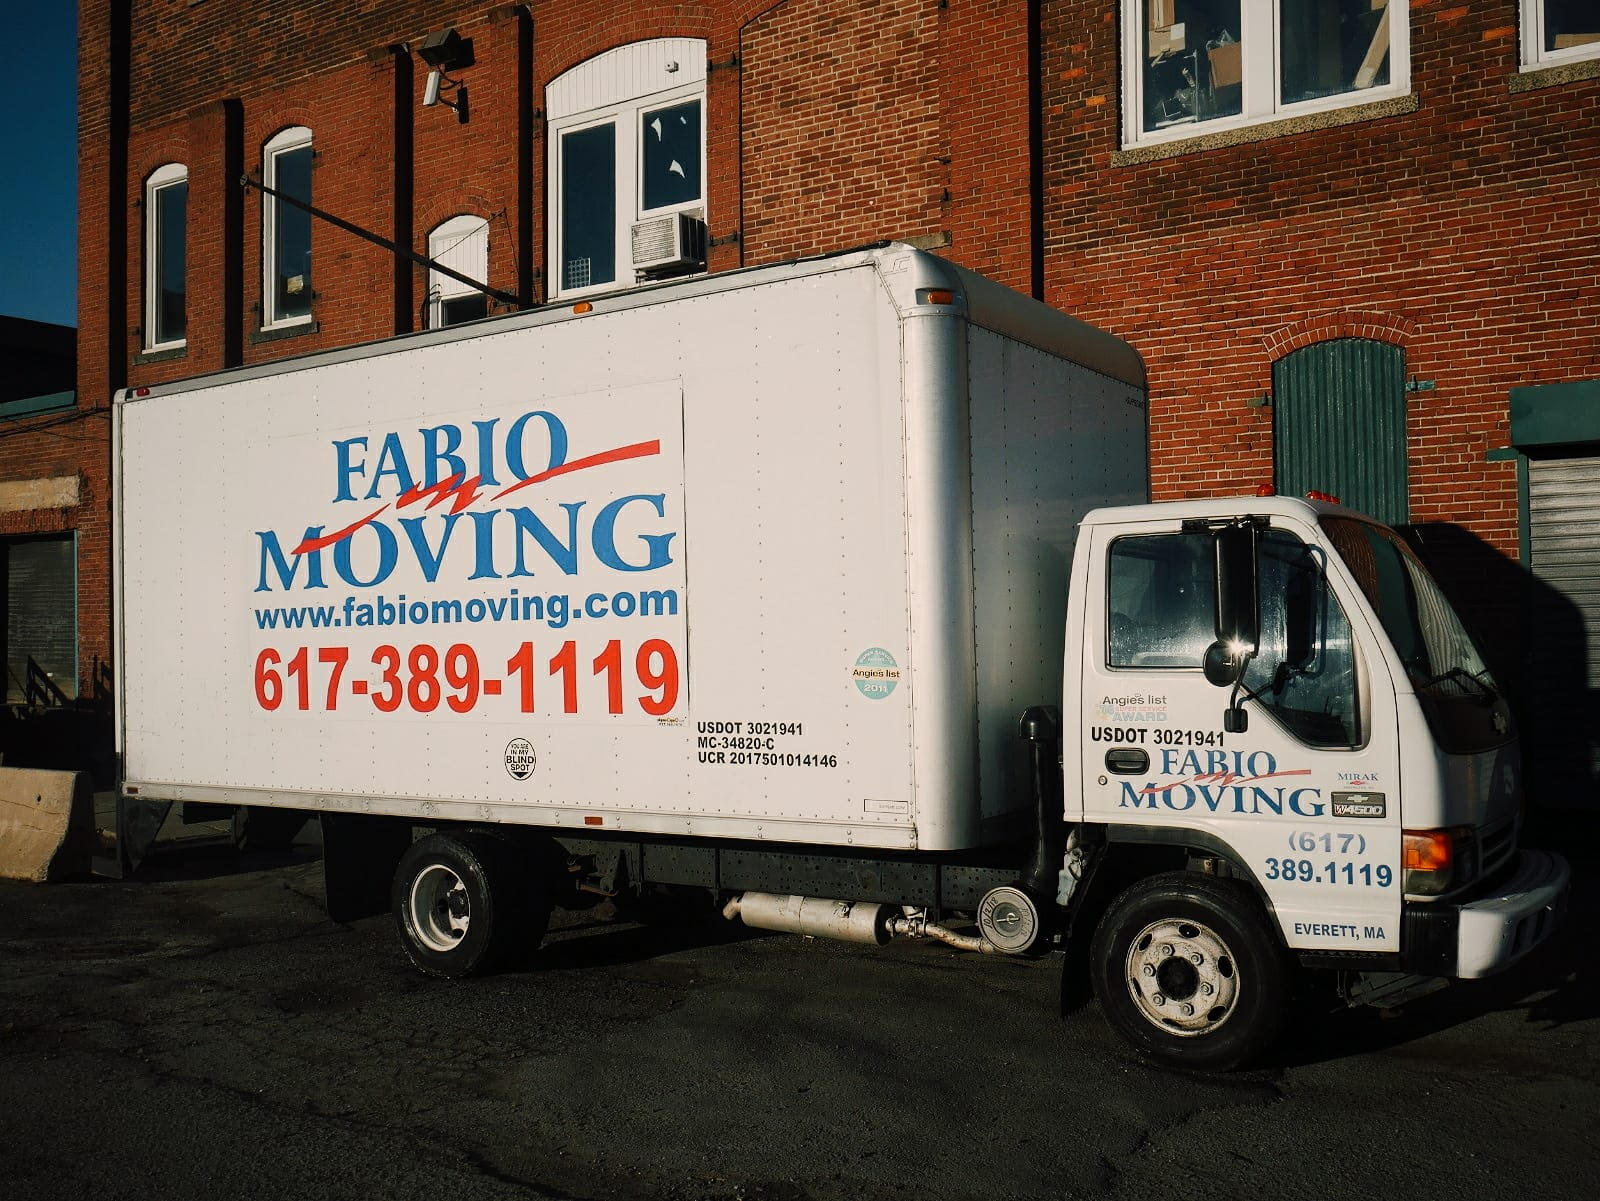 """- """"I have used Fabio four times; three times for local moves in Cambridge and Boston and most recently from Boston to New York. Each time, it went flawlessly. Any issues Fabio addressed quickly including my NYC building wanting beyond the usual level of insurance. Each furniture item was carefully wrapped and everything made it in perfect condition. They asked where to put each item in the apartment. Fabio has been at each and every move along with 1-2 other movers. Super friendly and professional - a class act. Five stars all the way!!!""""-Kim H."""